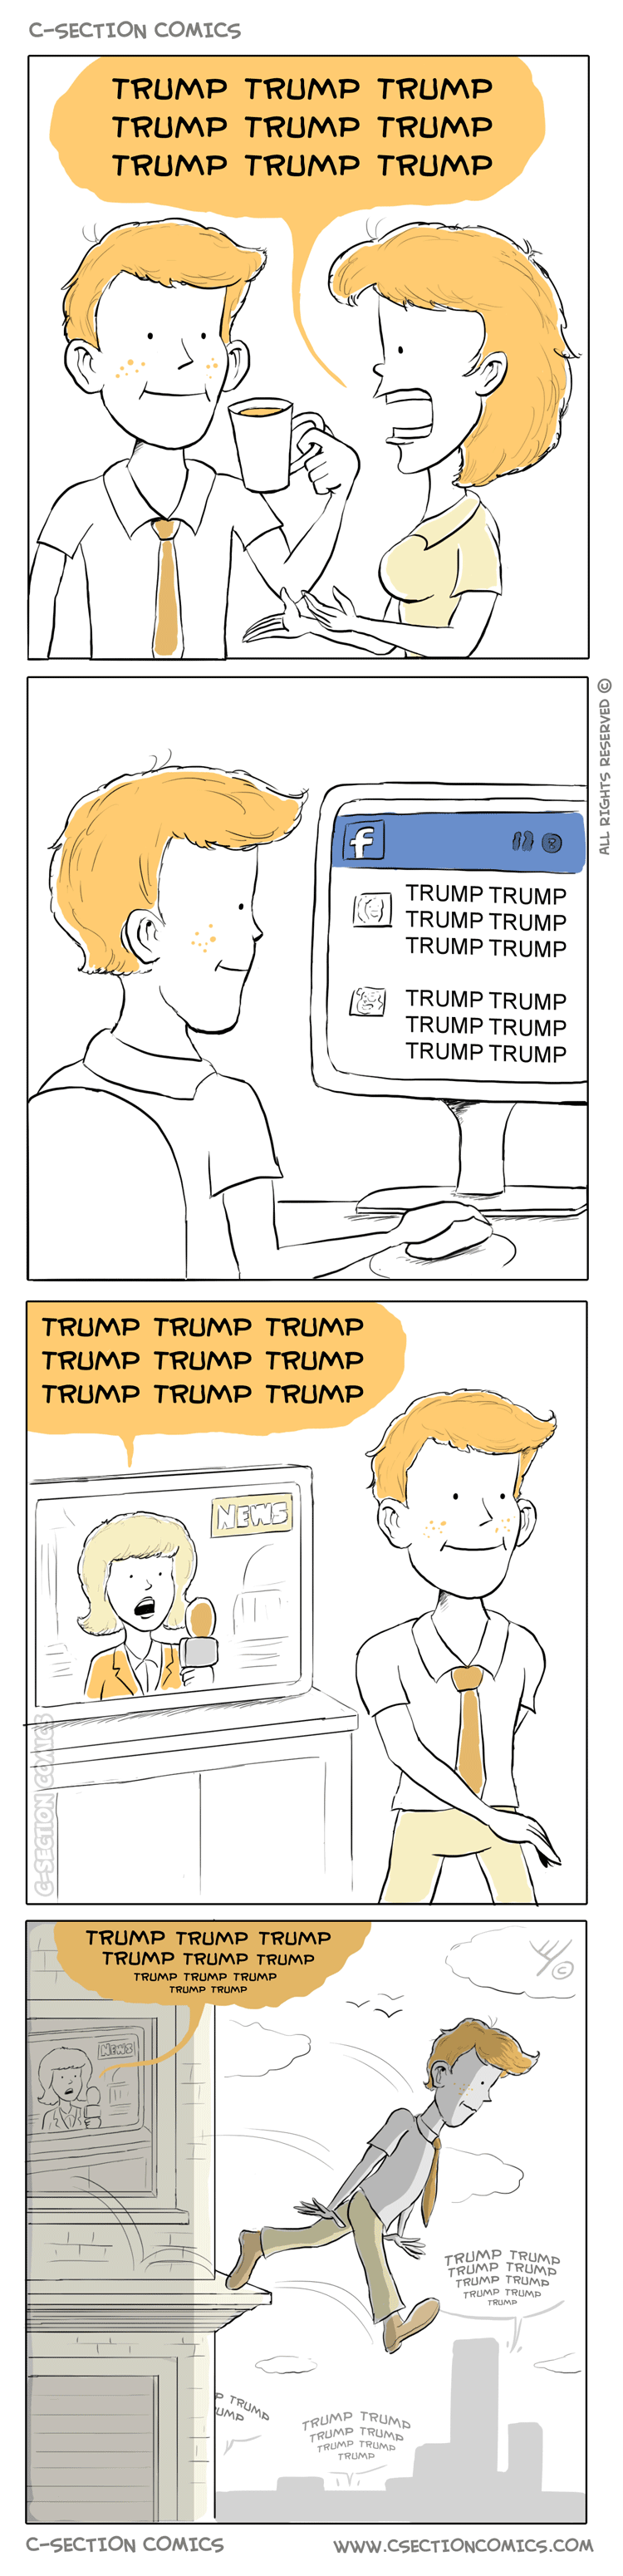 Trump Trump Trump - by C-Section Comics